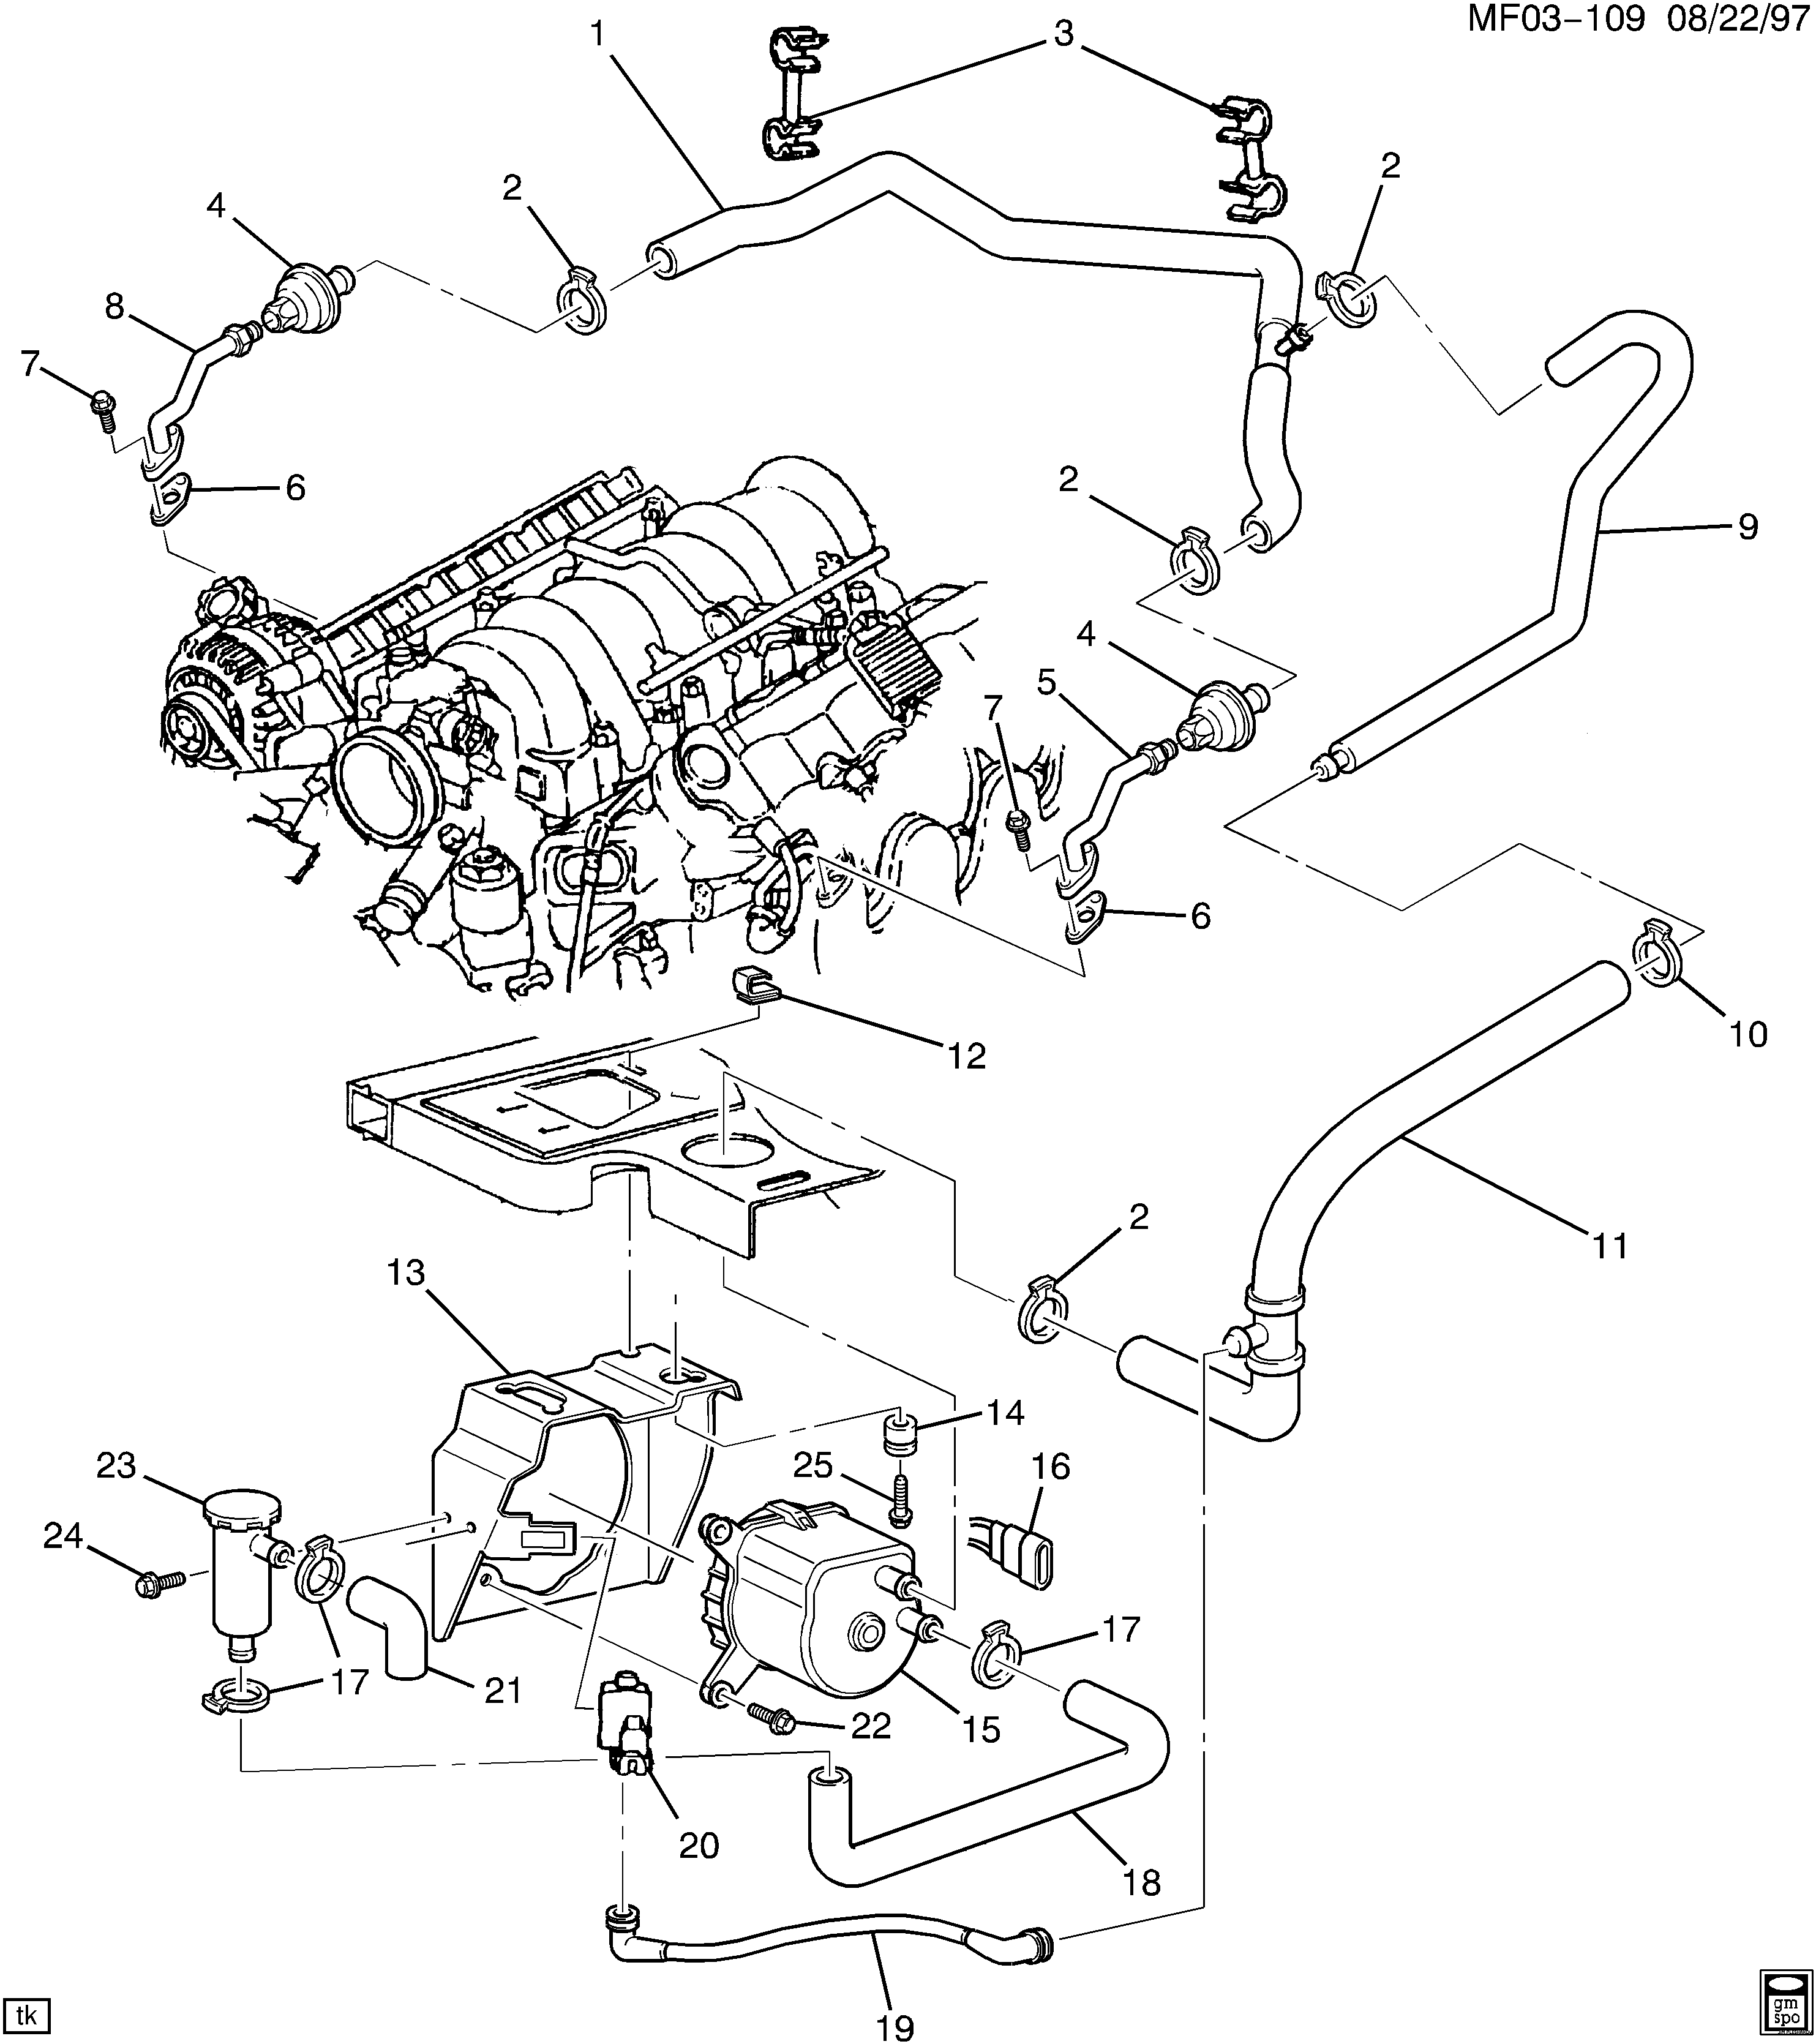 Pontiac Firebird F Air Pump Related Parts Ls1 57g Epc 2003 Chevy Venture Engine Diagram Spare Catalog